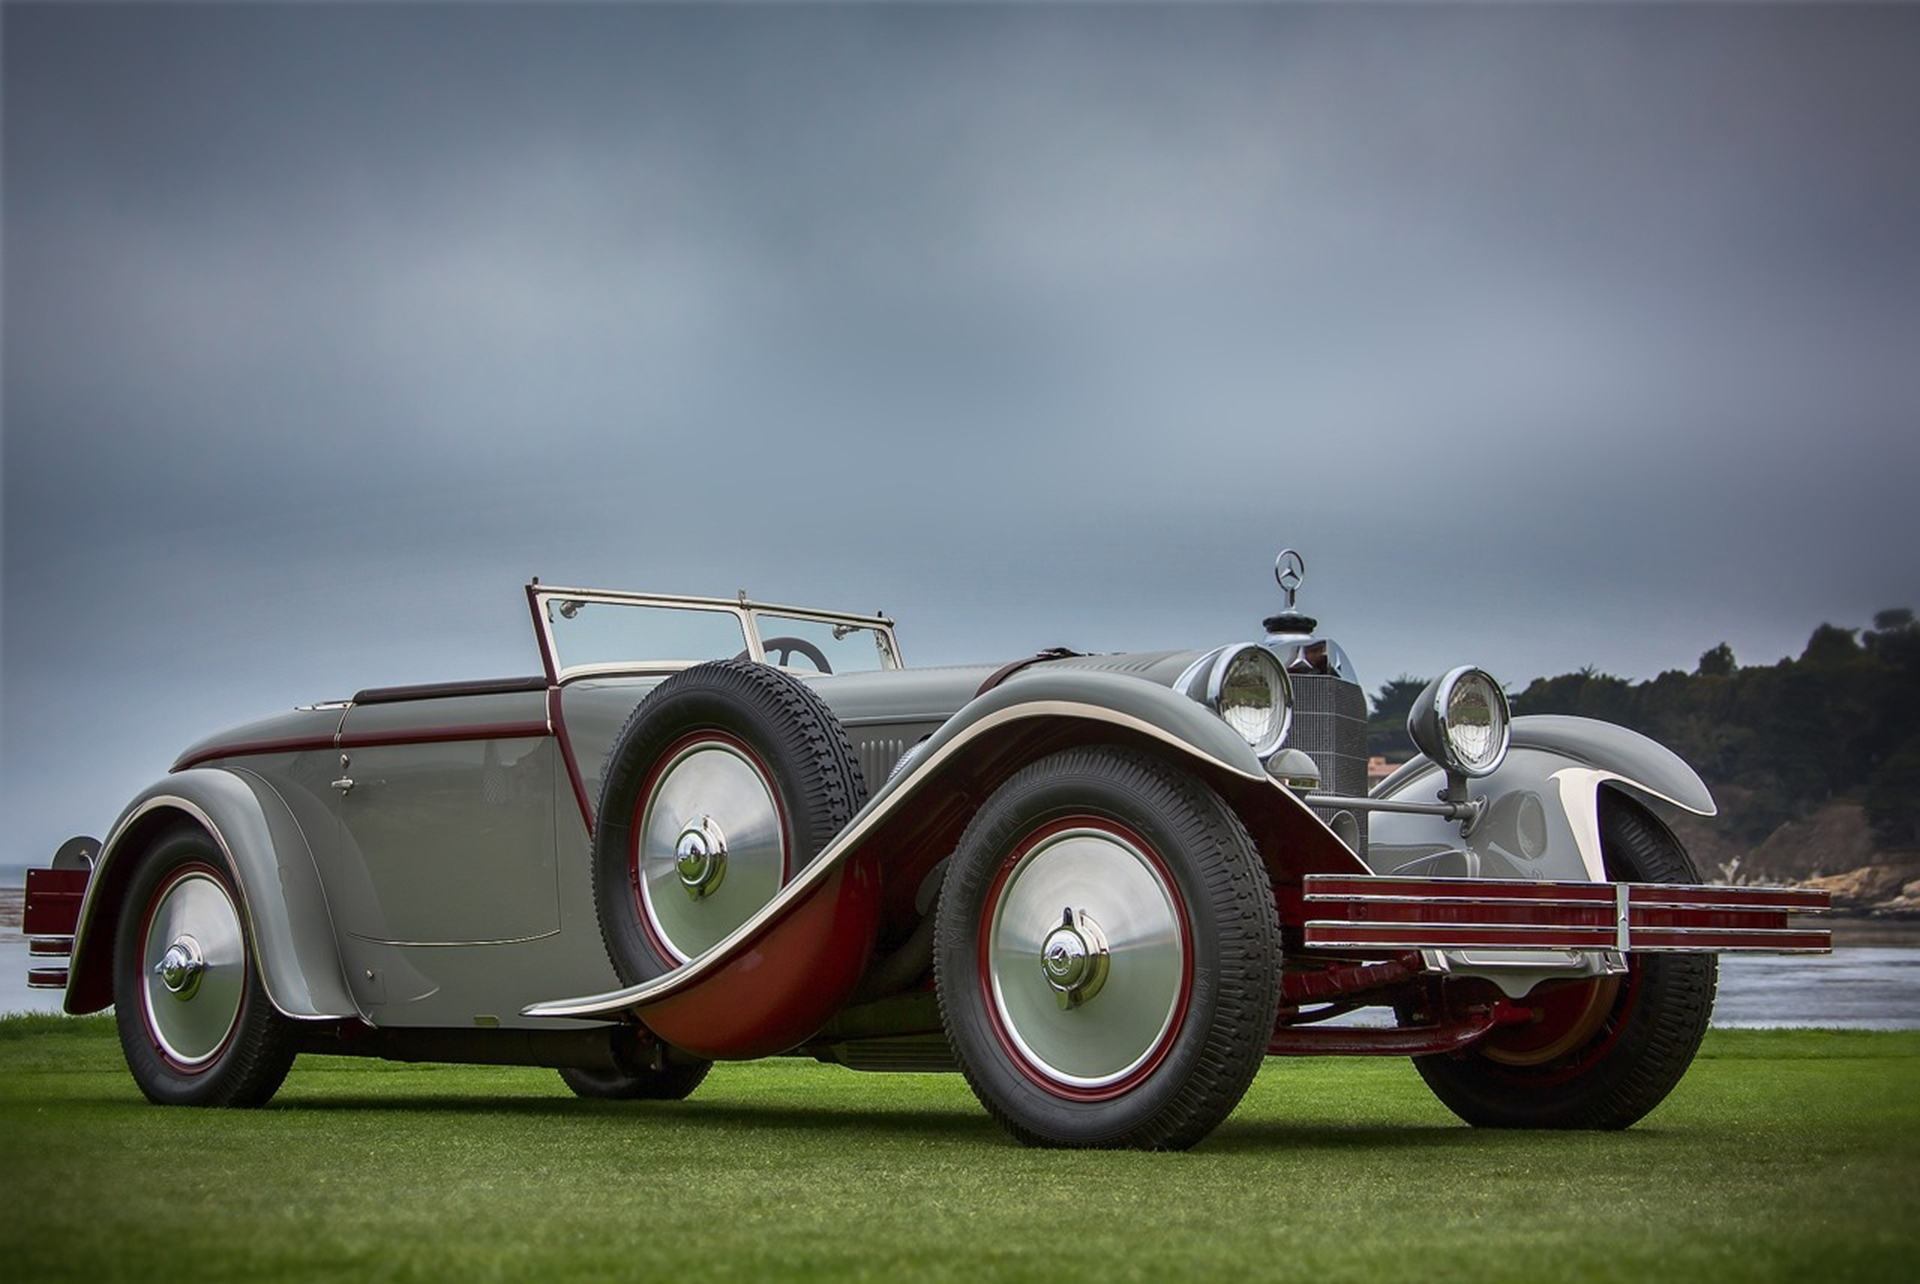 Mercedes benz wins best of show title at the 2012 pebble - Mercedes car show ...